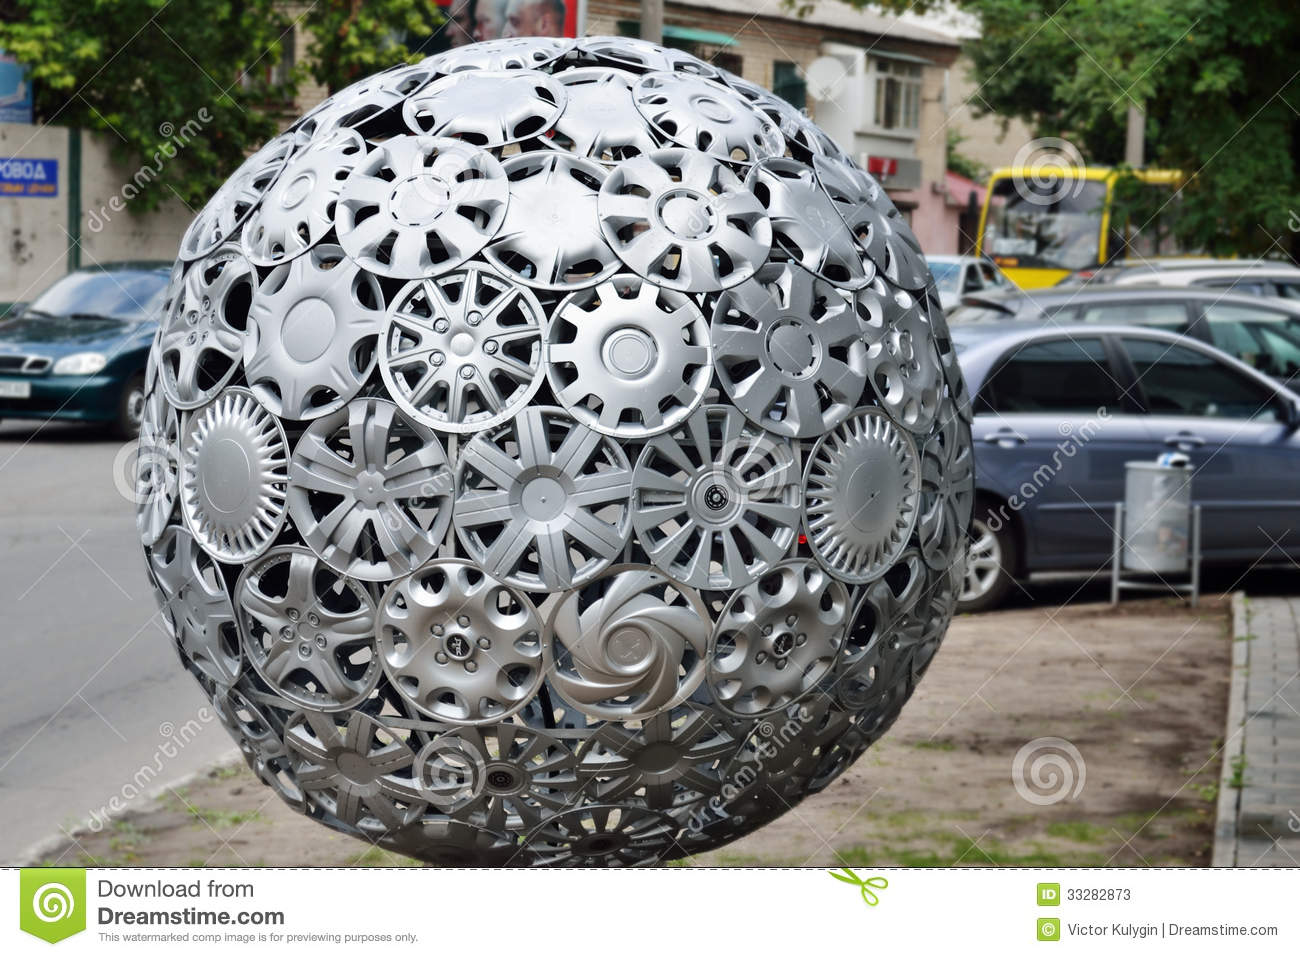 All Round Tire >> Hubcaps ball editorial stock photo. Image of automobile - 33282873